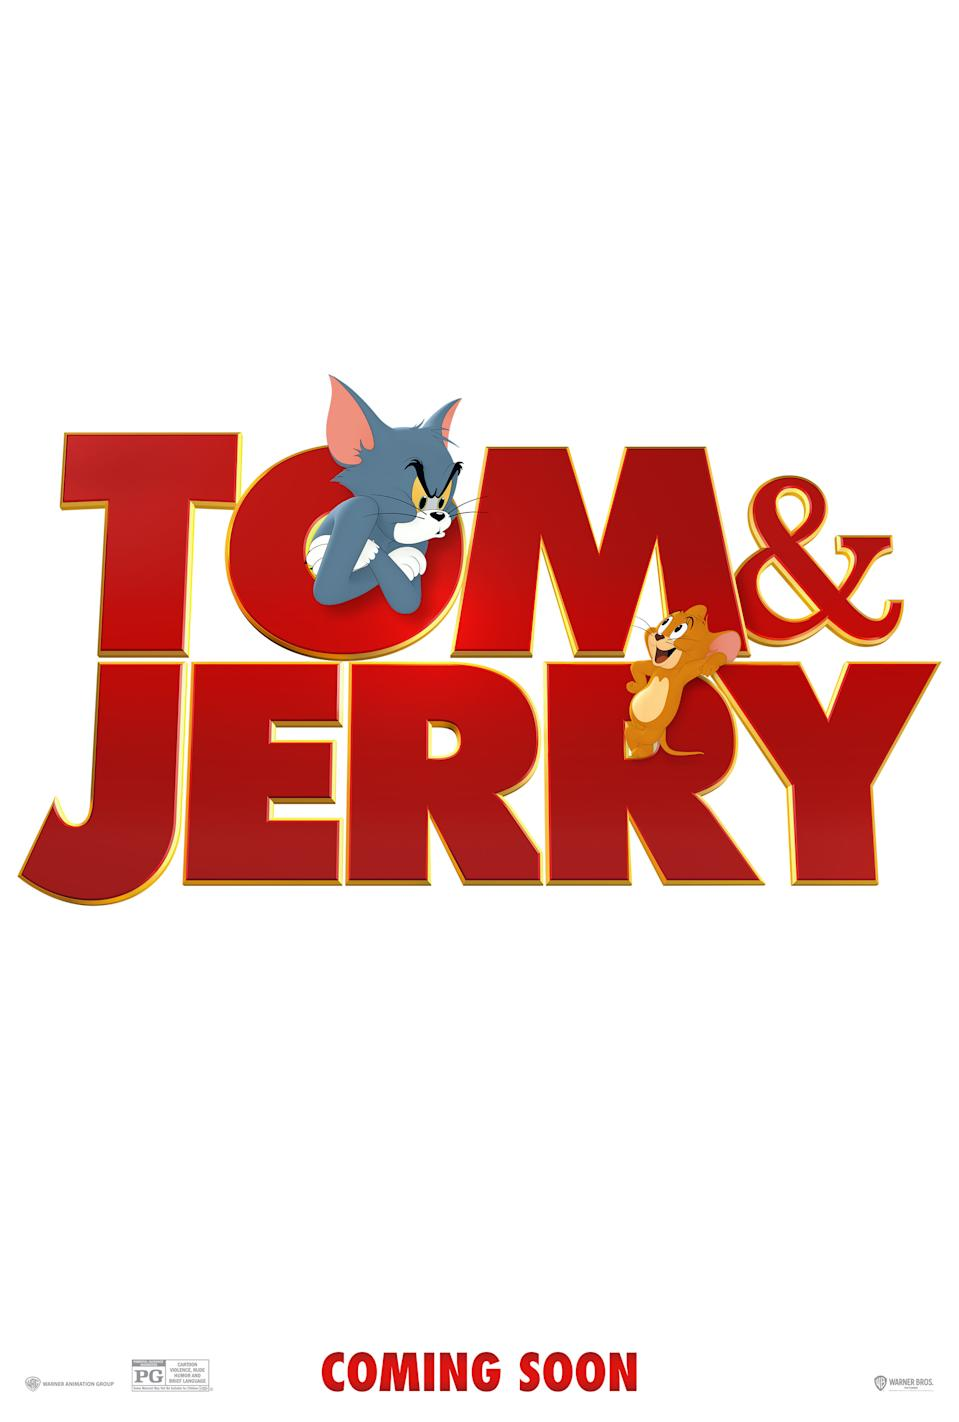 The teaser poster for Tom & Jerry (Warner Bros. Pictures)